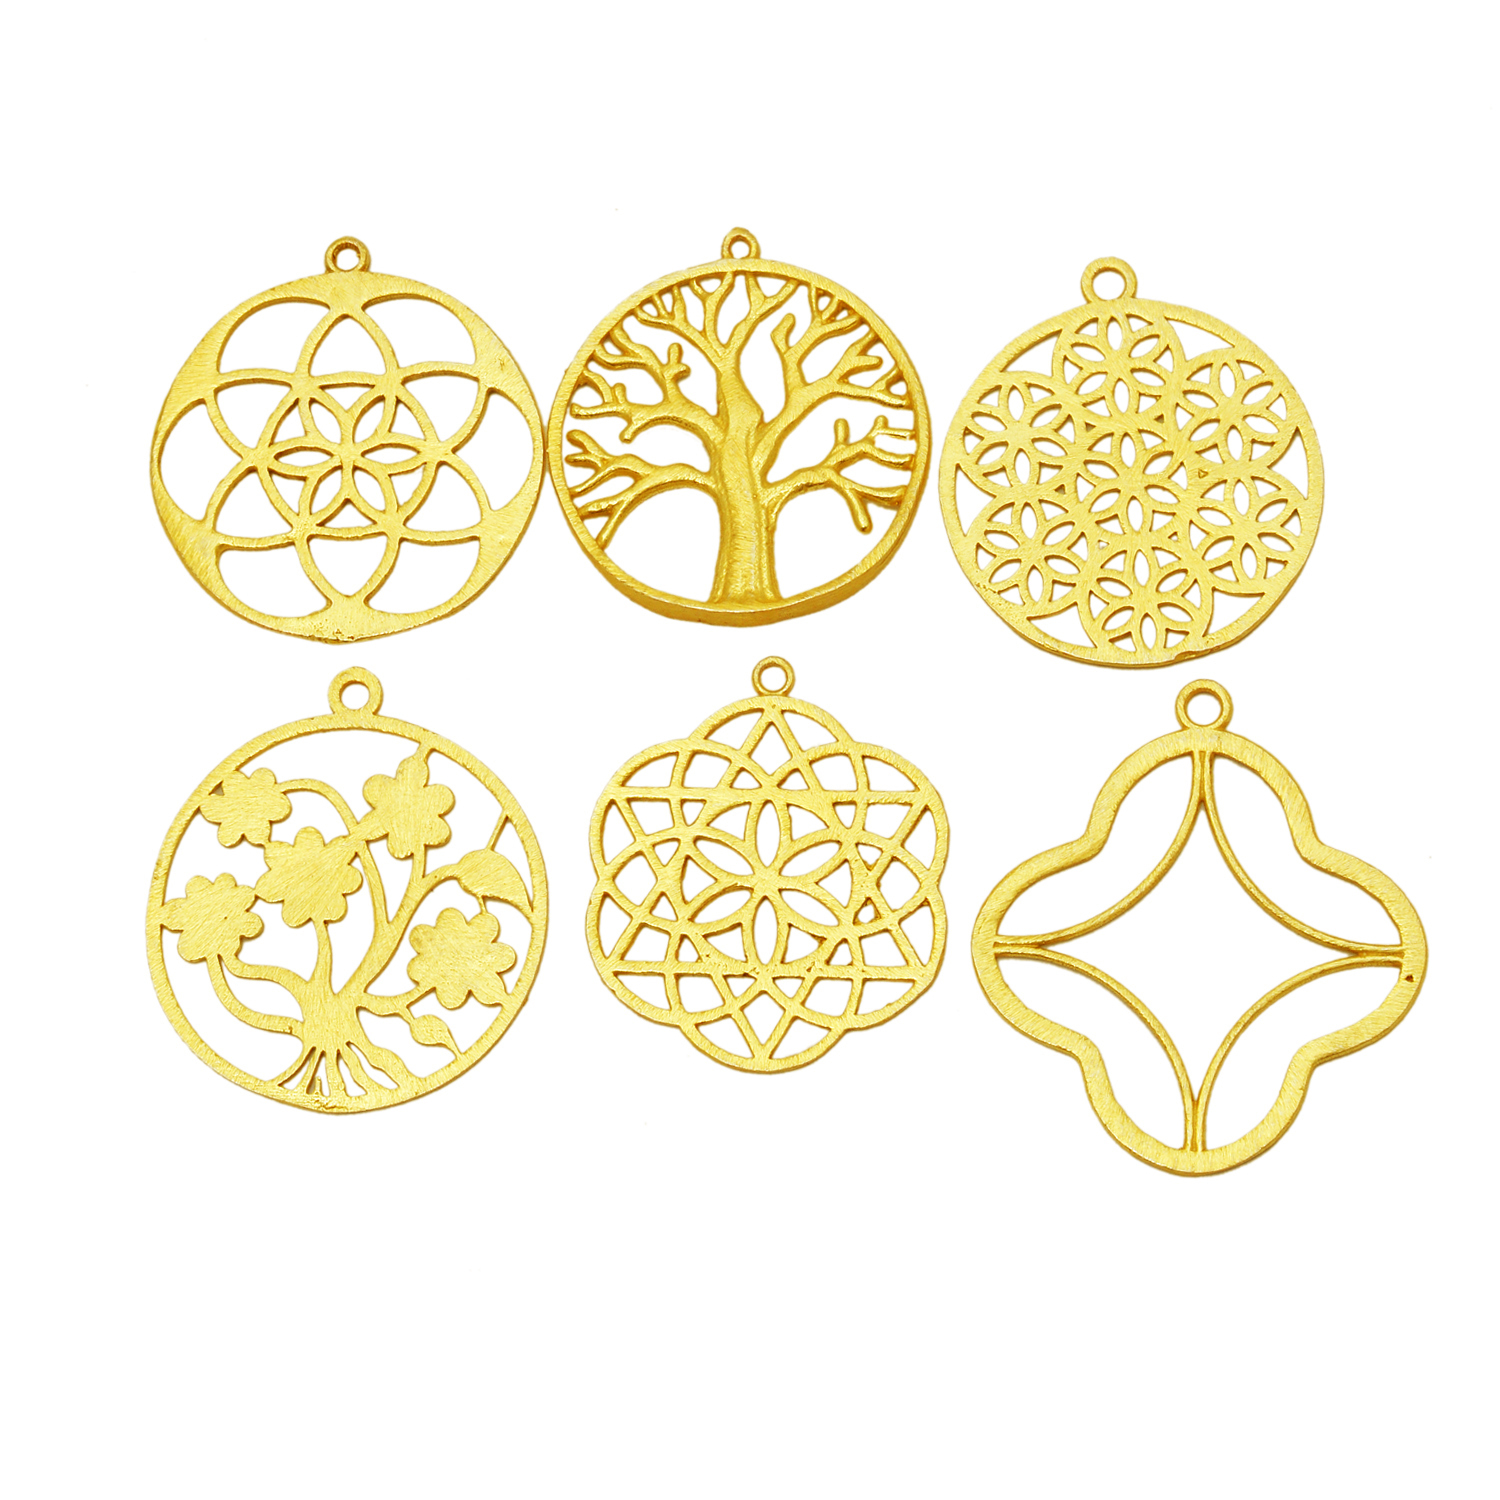 Trendy Brushed Gold Plated Round Tree Design Metal Charms Pendant - Jewelry Findings Charms